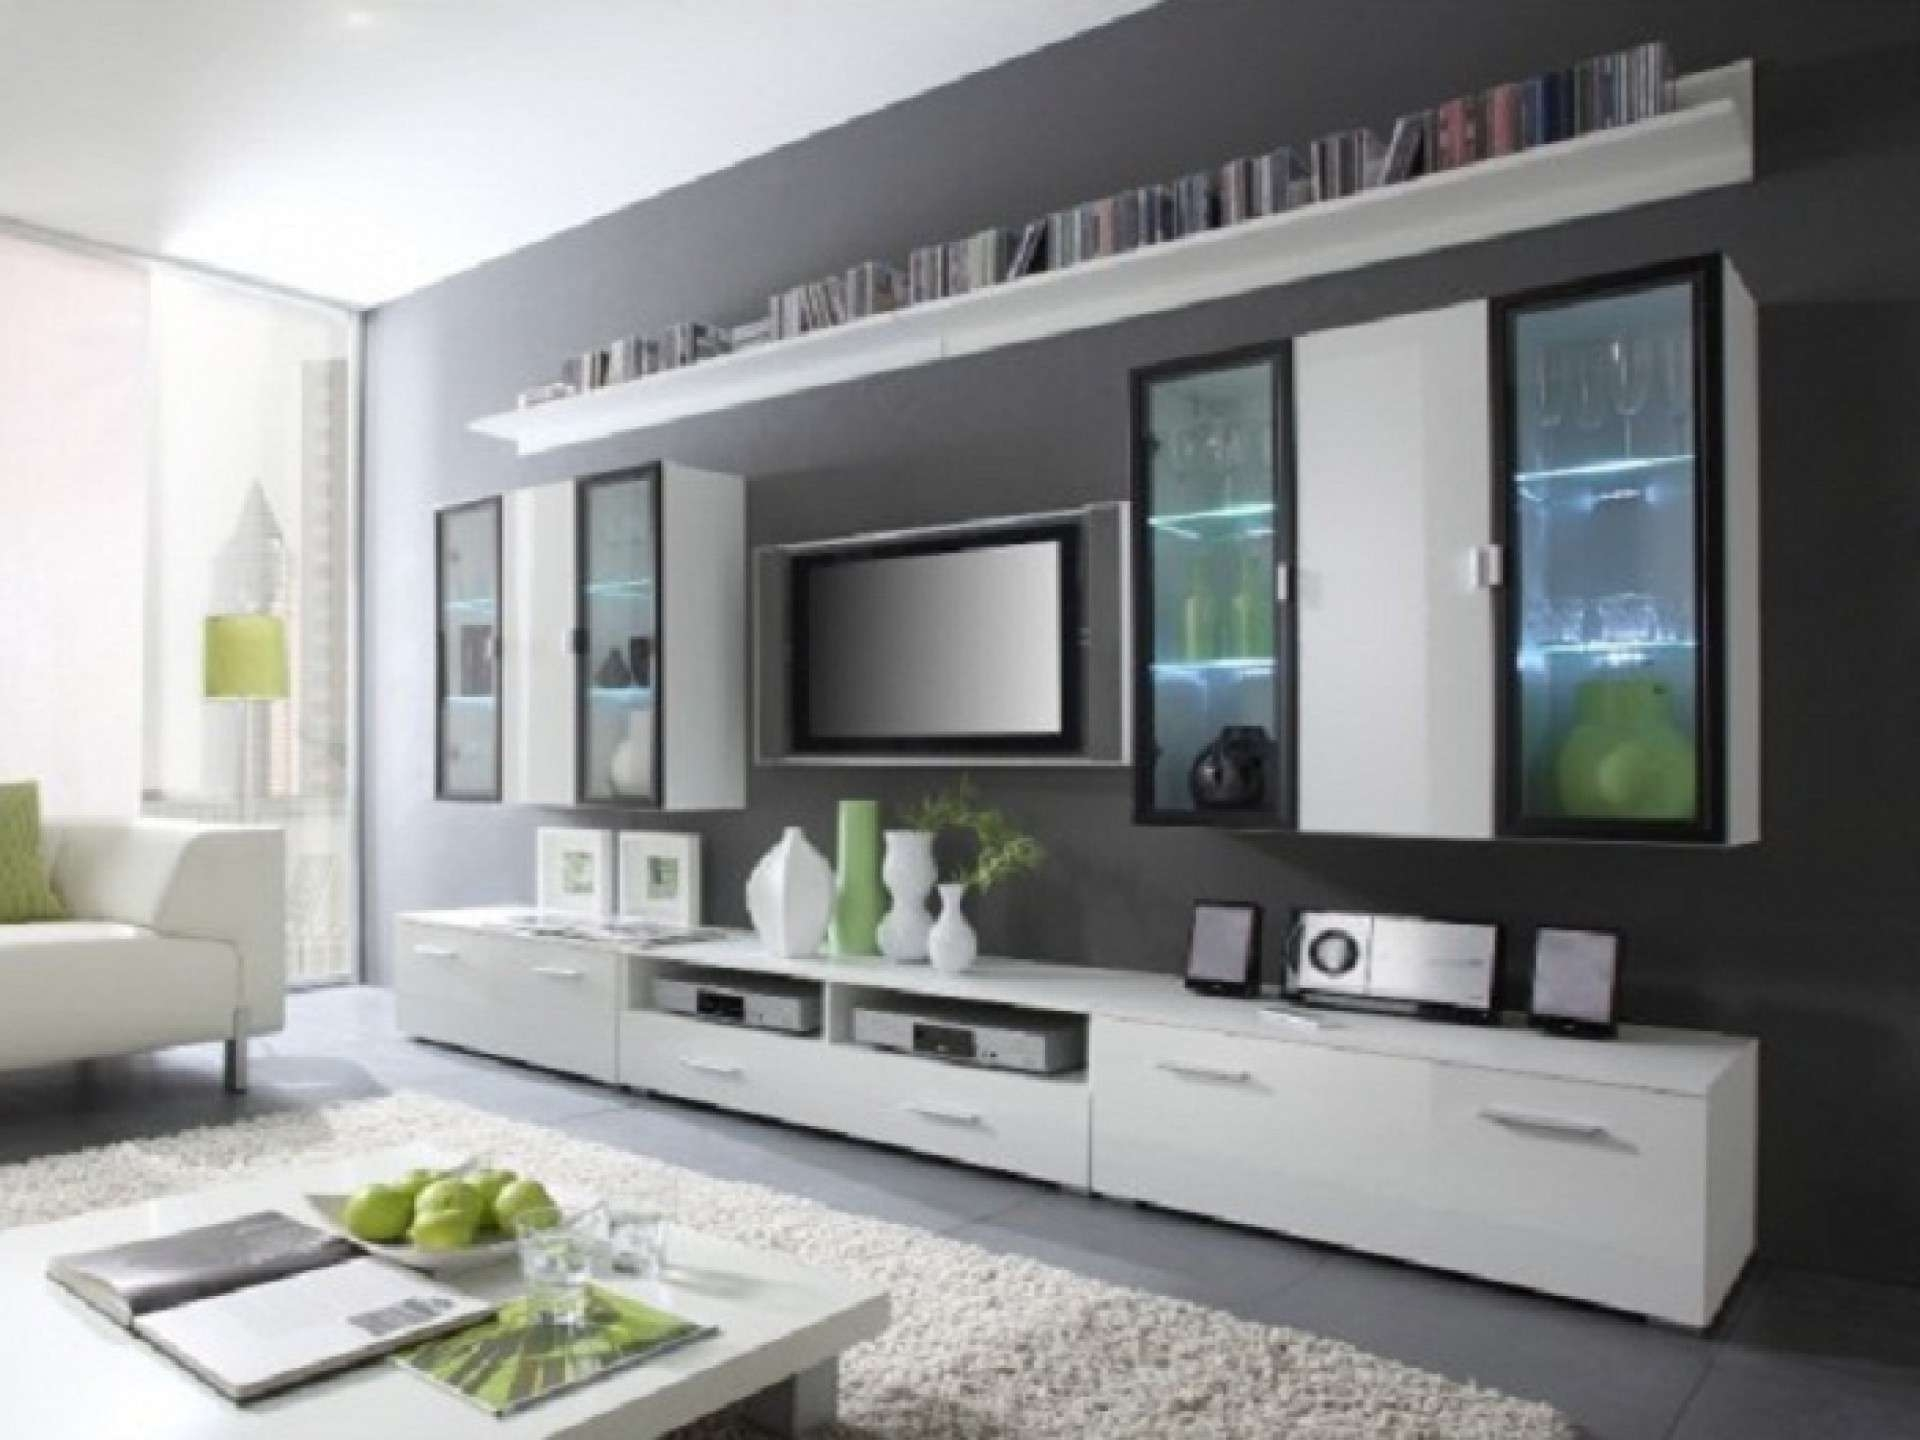 Wall Mounted Under Tv Cabinet – Home Design Ideas And Pictures With Under Tv Cabinets (View 20 of 20)